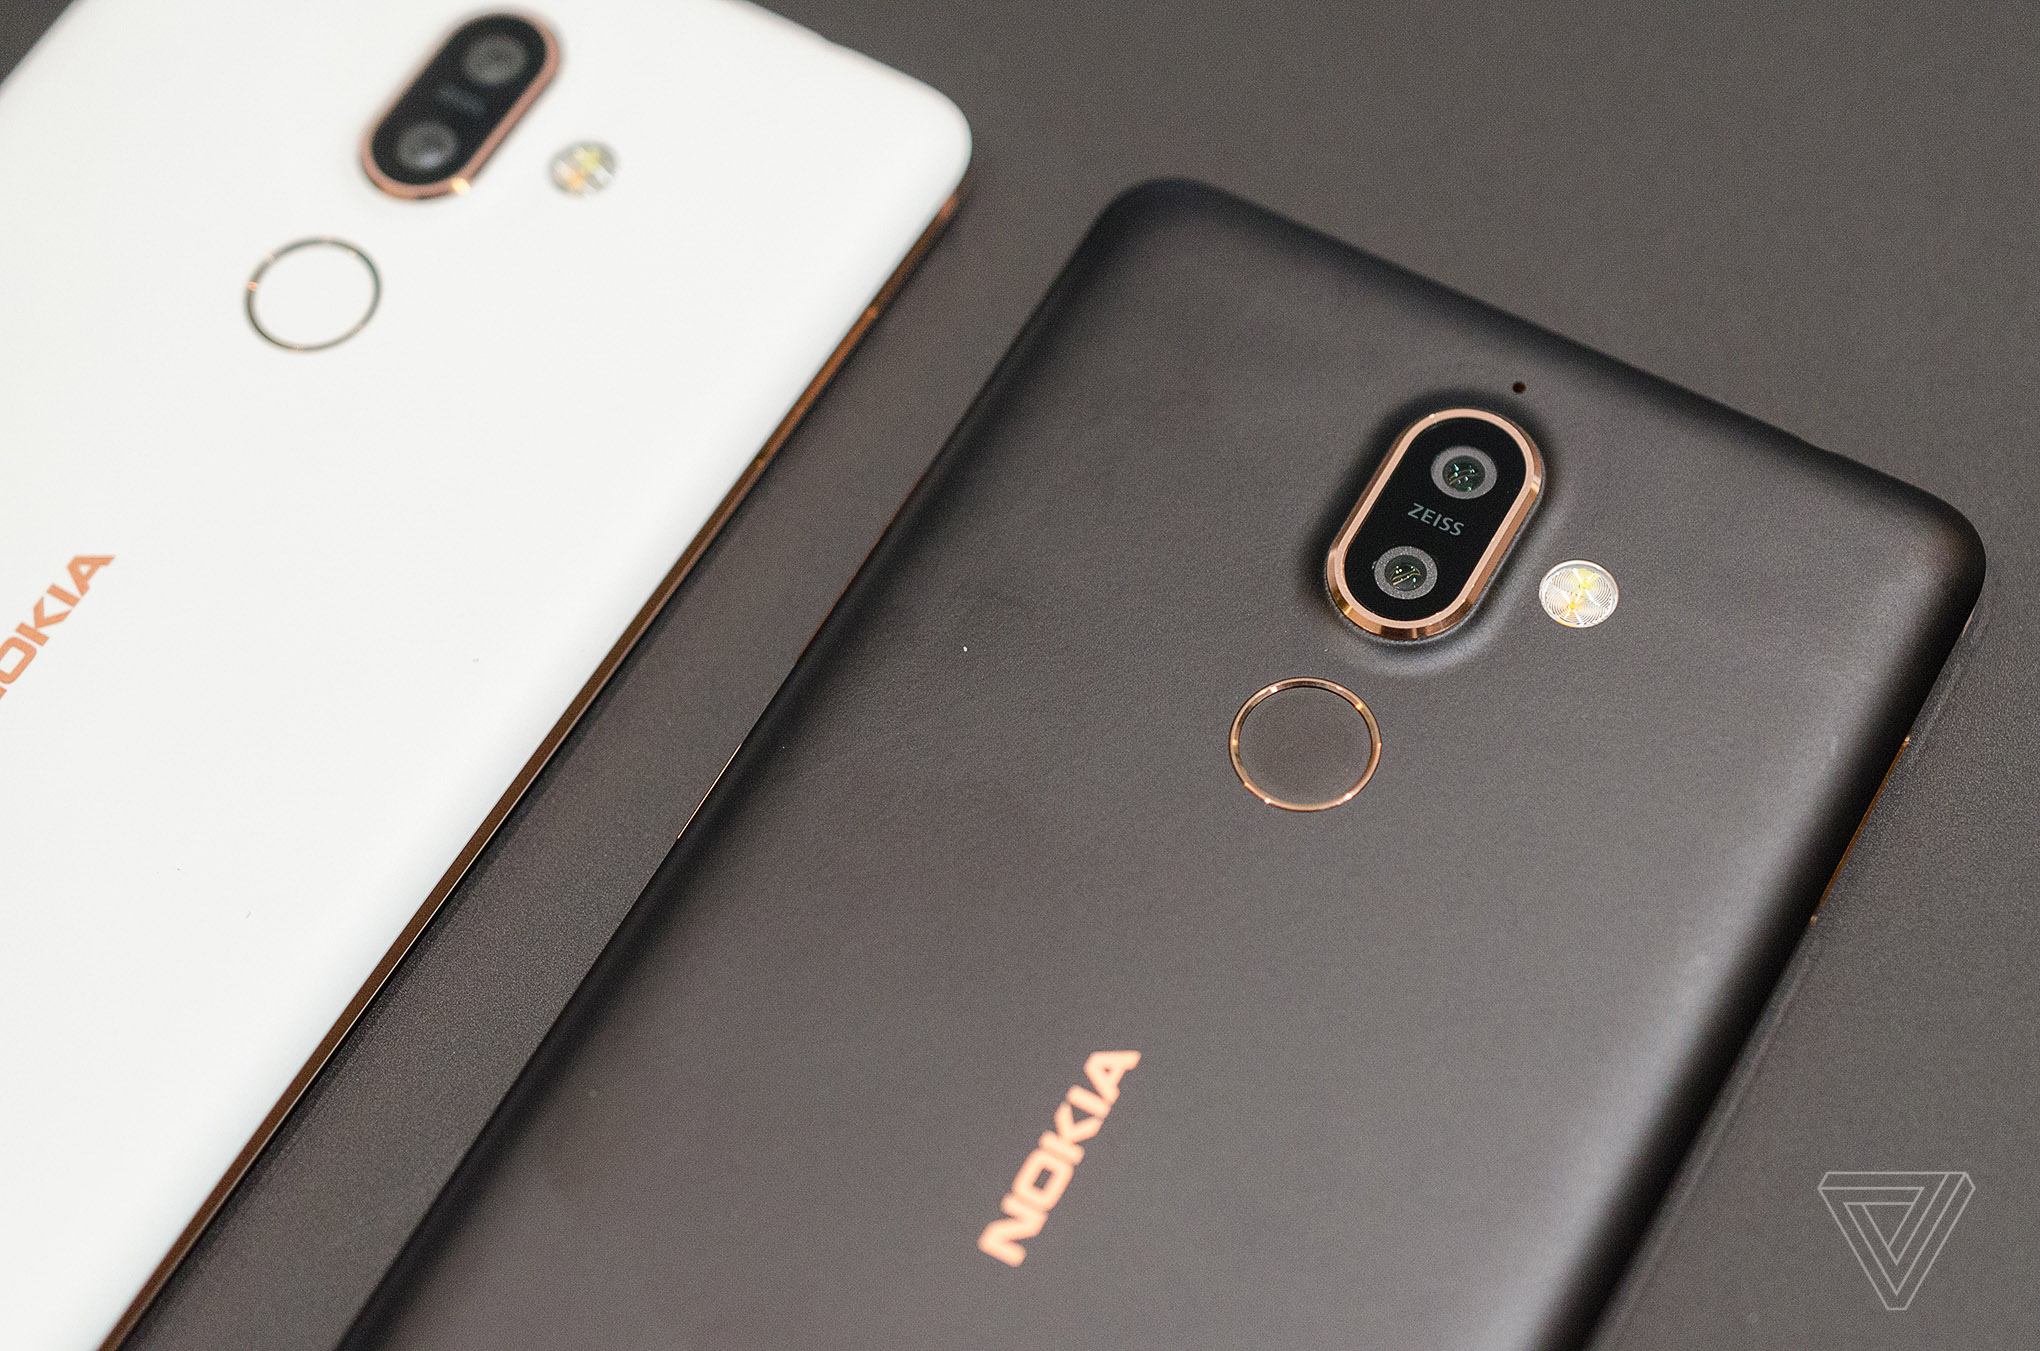 The Nokia 8 Sirocco is a curved glass Android flagship with